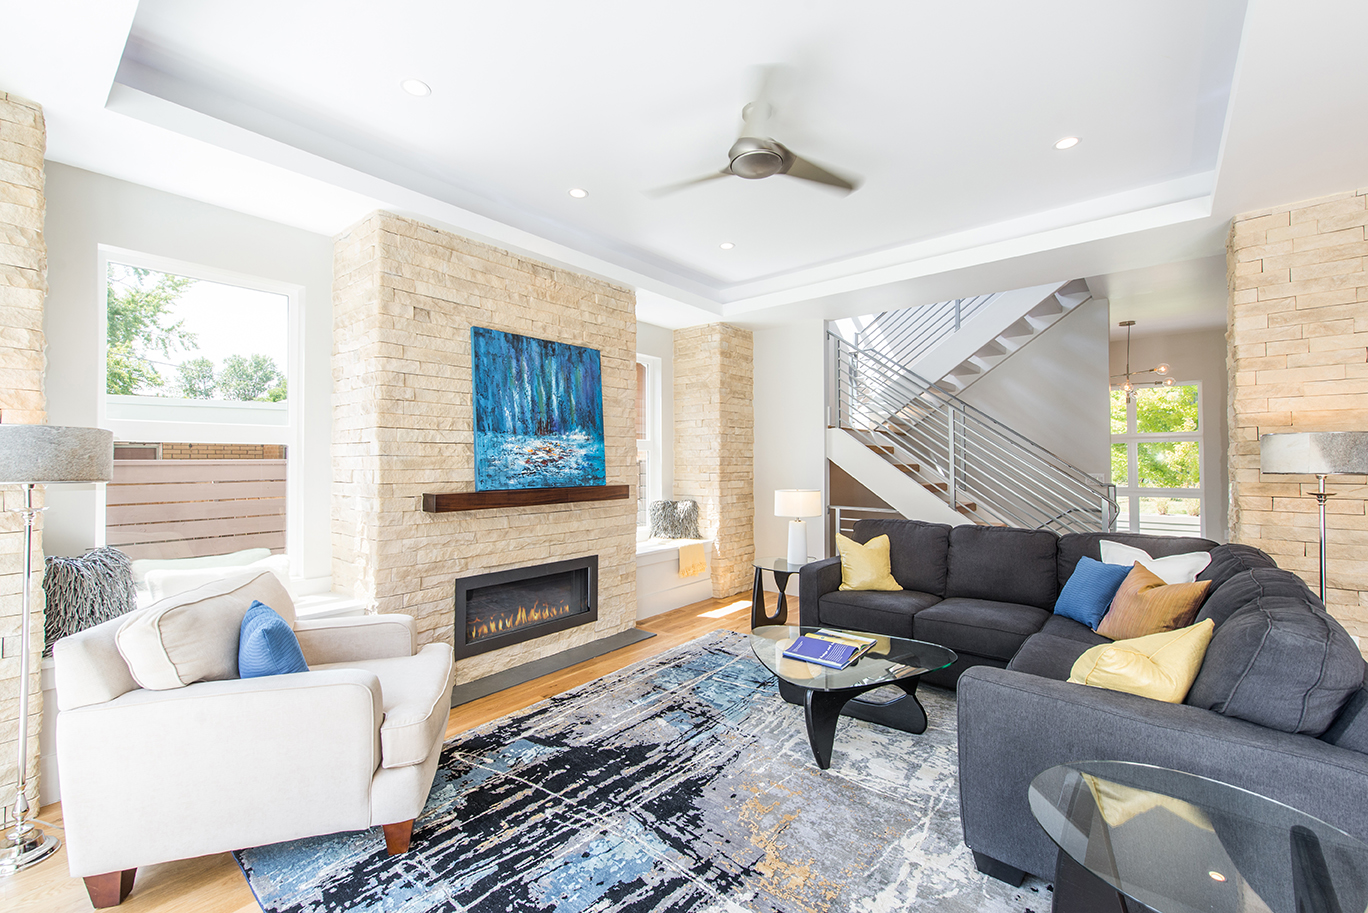 1152 Forest Street is listed for sale by LIV Sotheby's International Realty for $1,075,000.